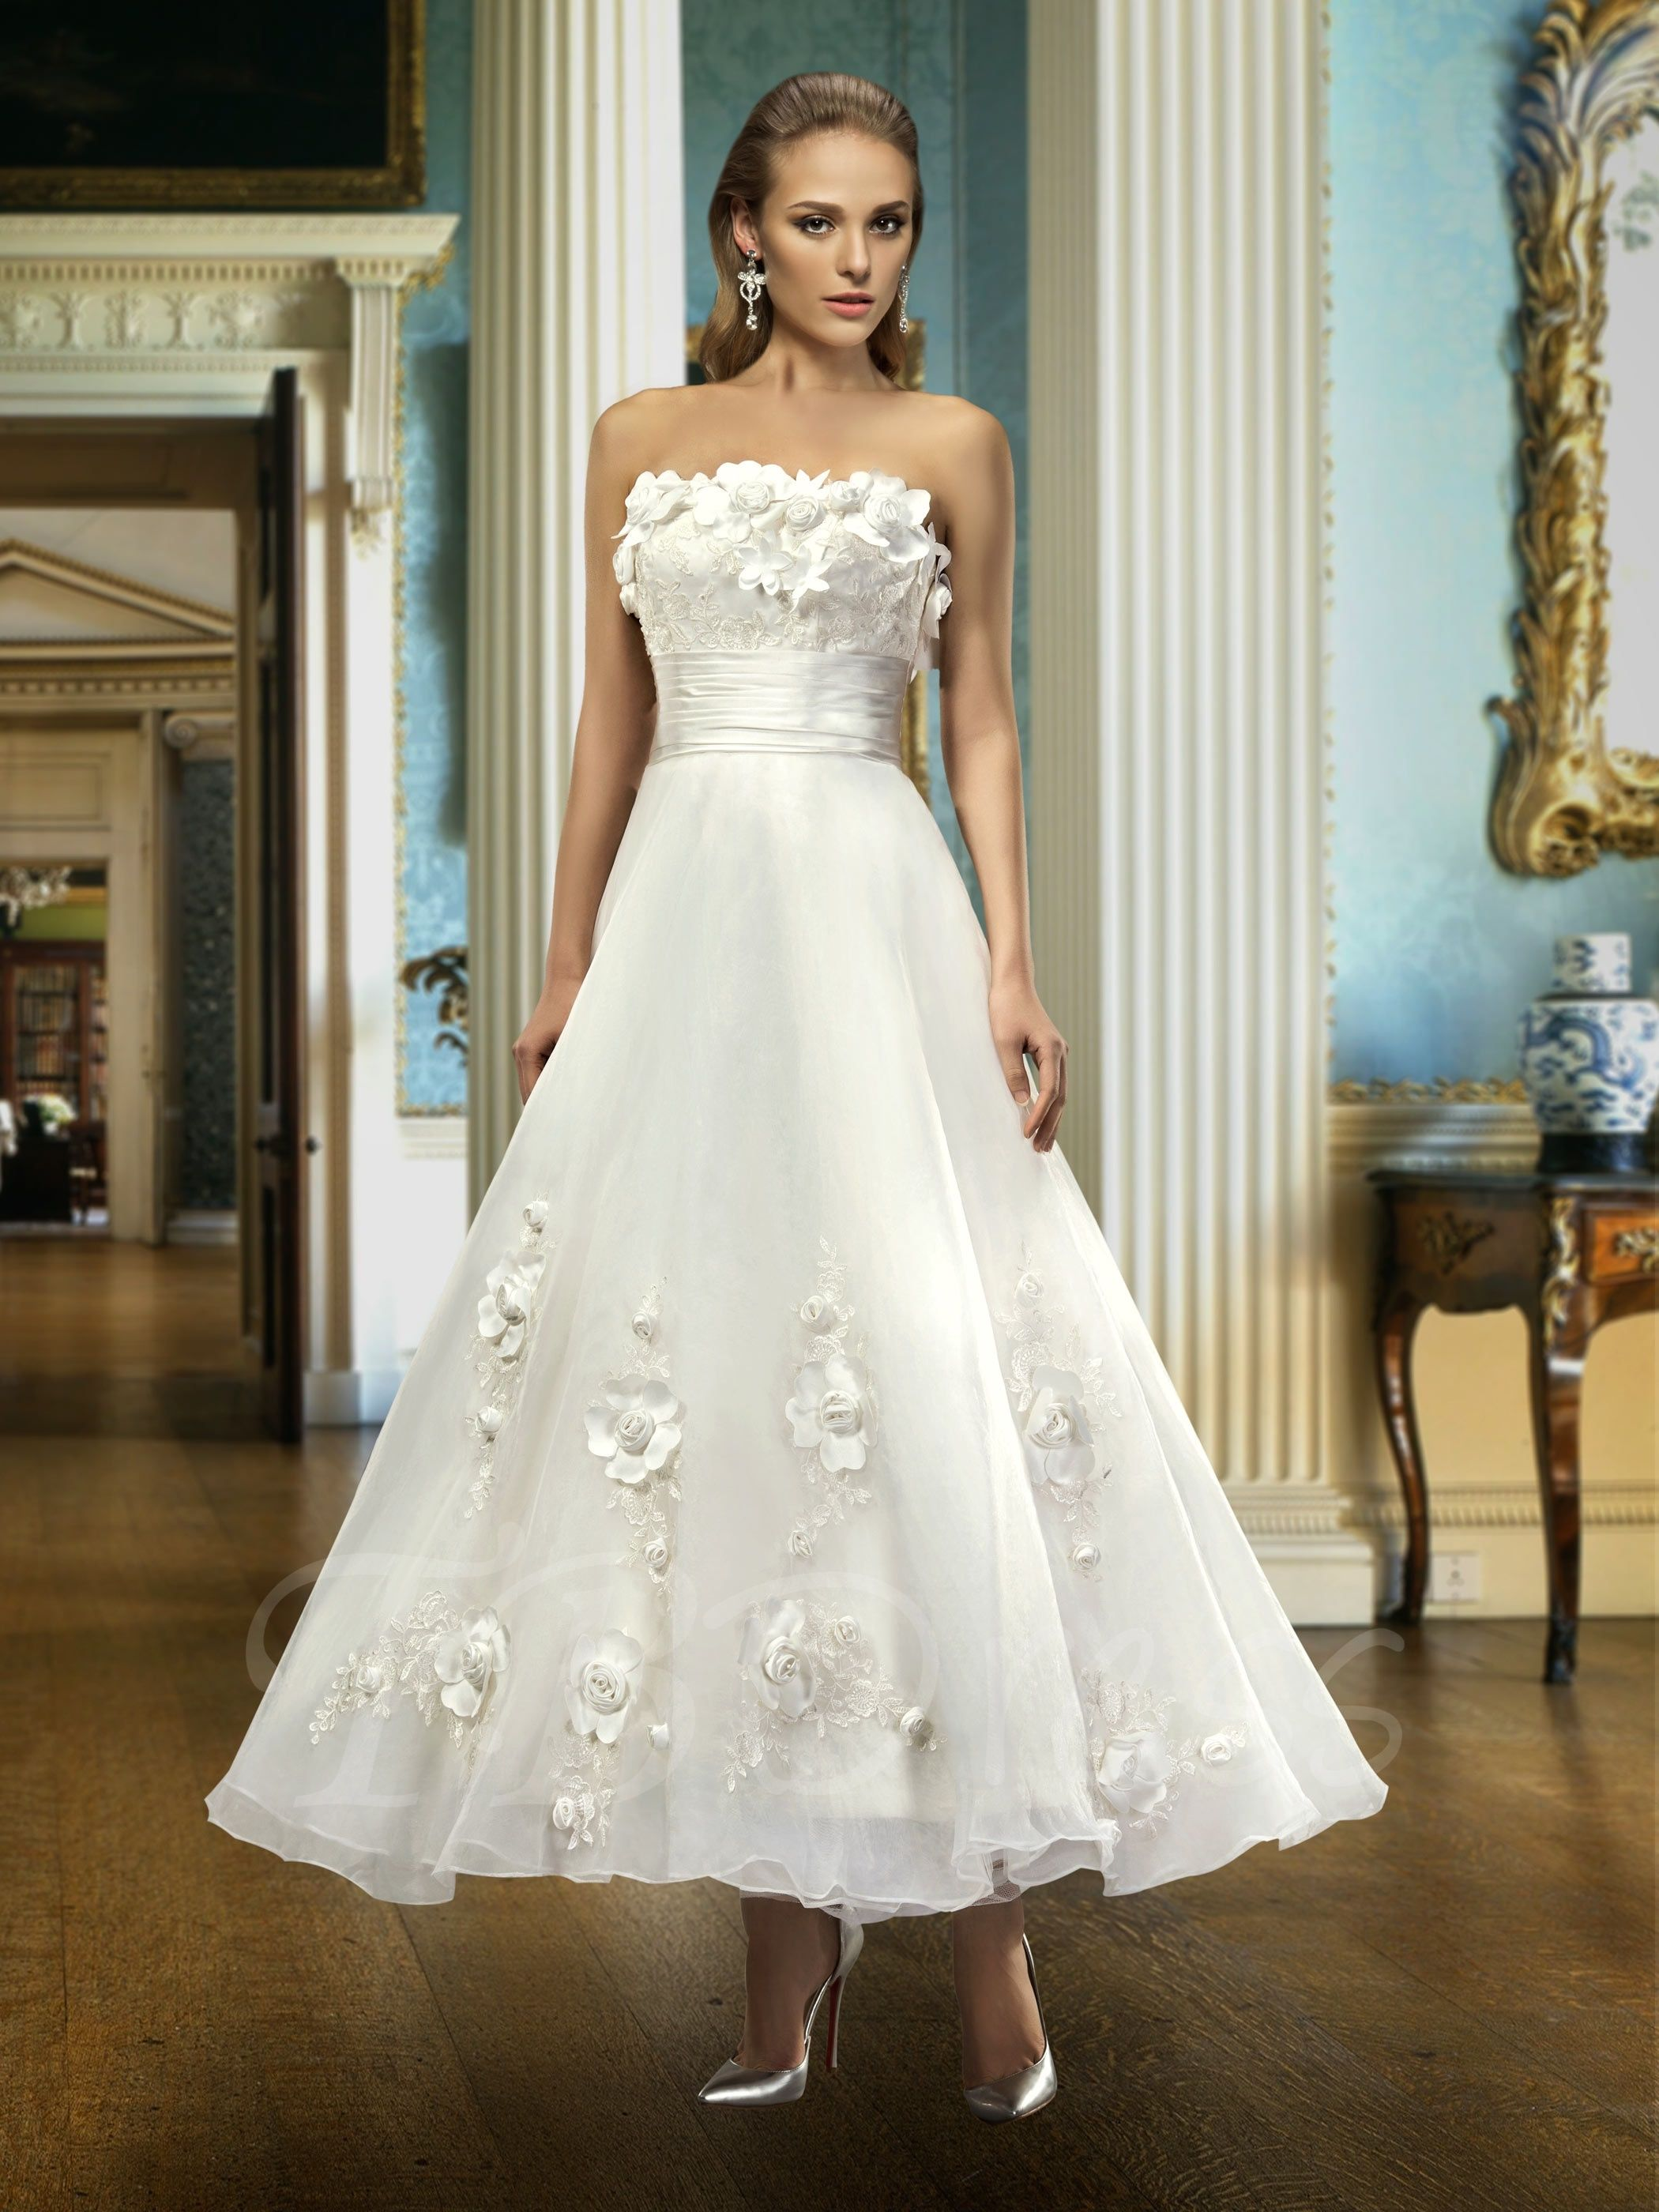 A-Line Strapless Flowers Ankle-Length Wedding Dress | Ankle length ...